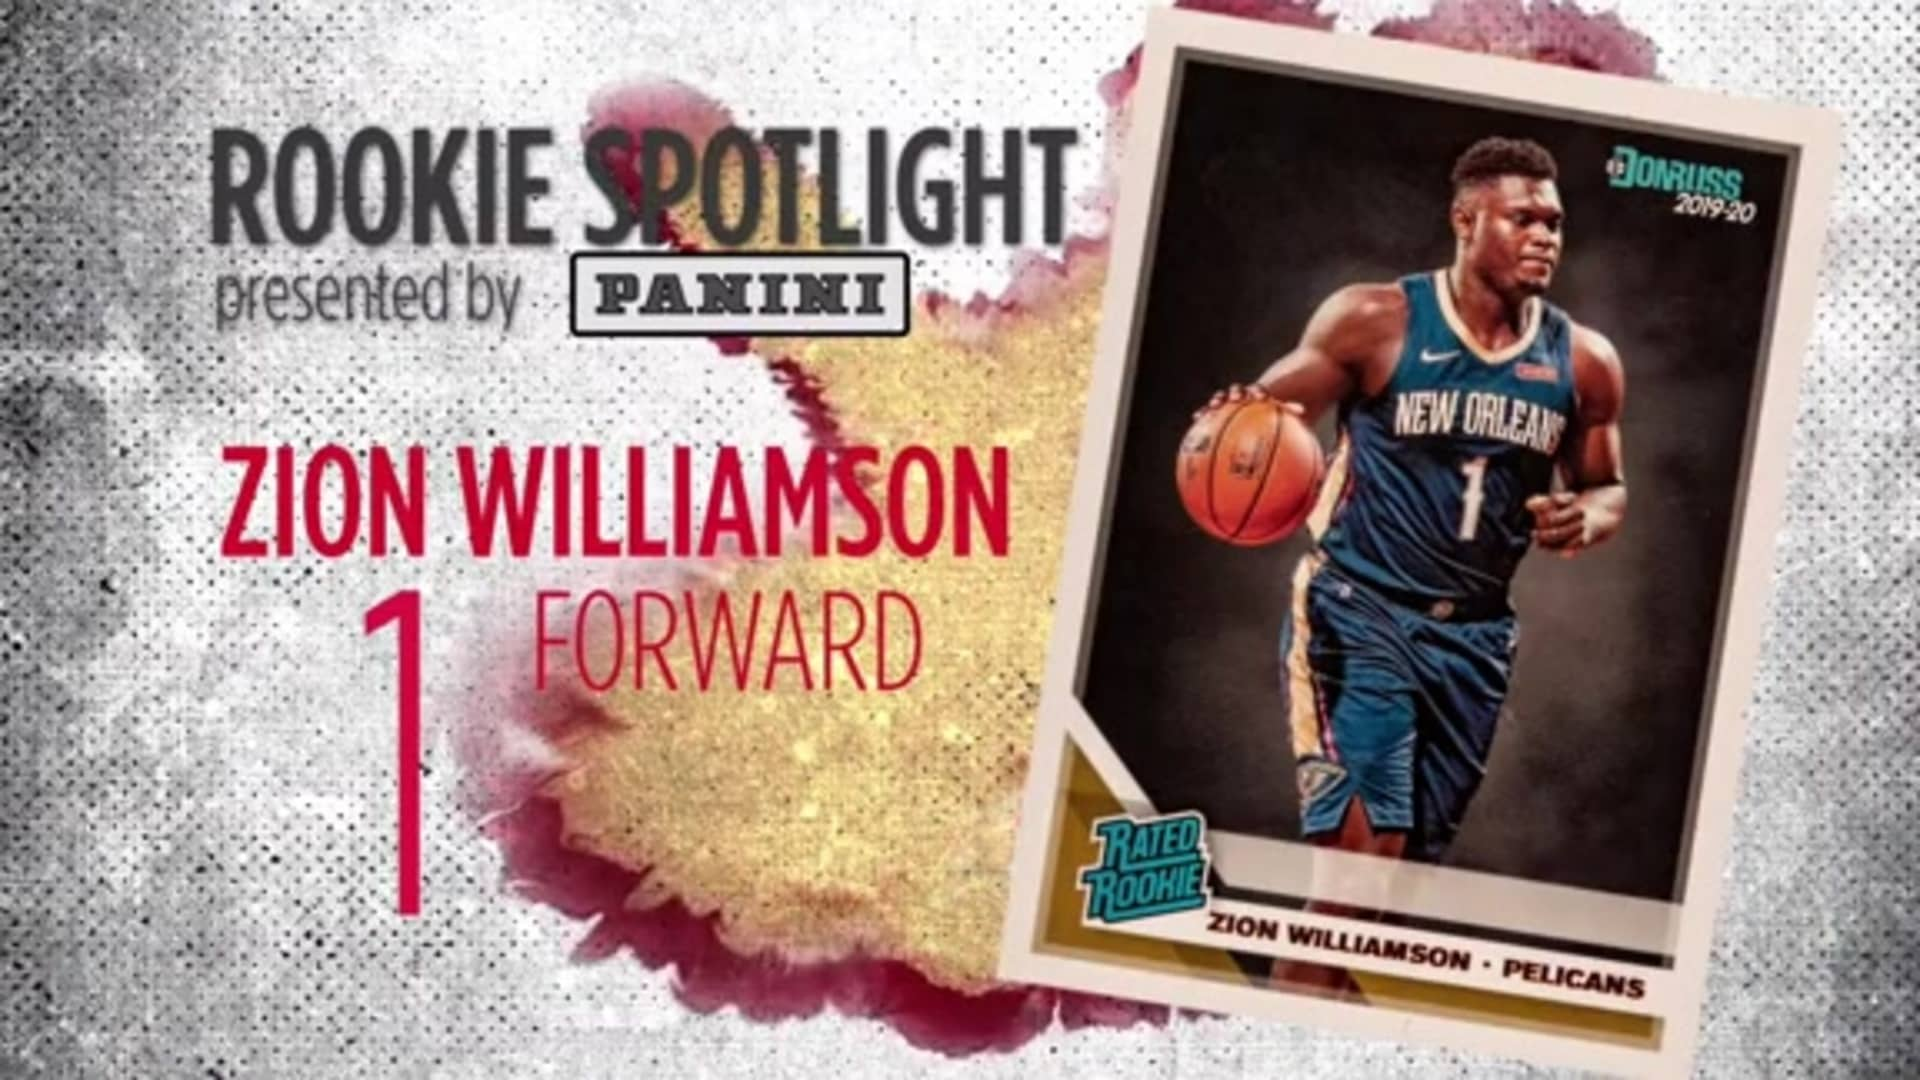 Pelicans Spotlight presented by Panini: Zion Williamson